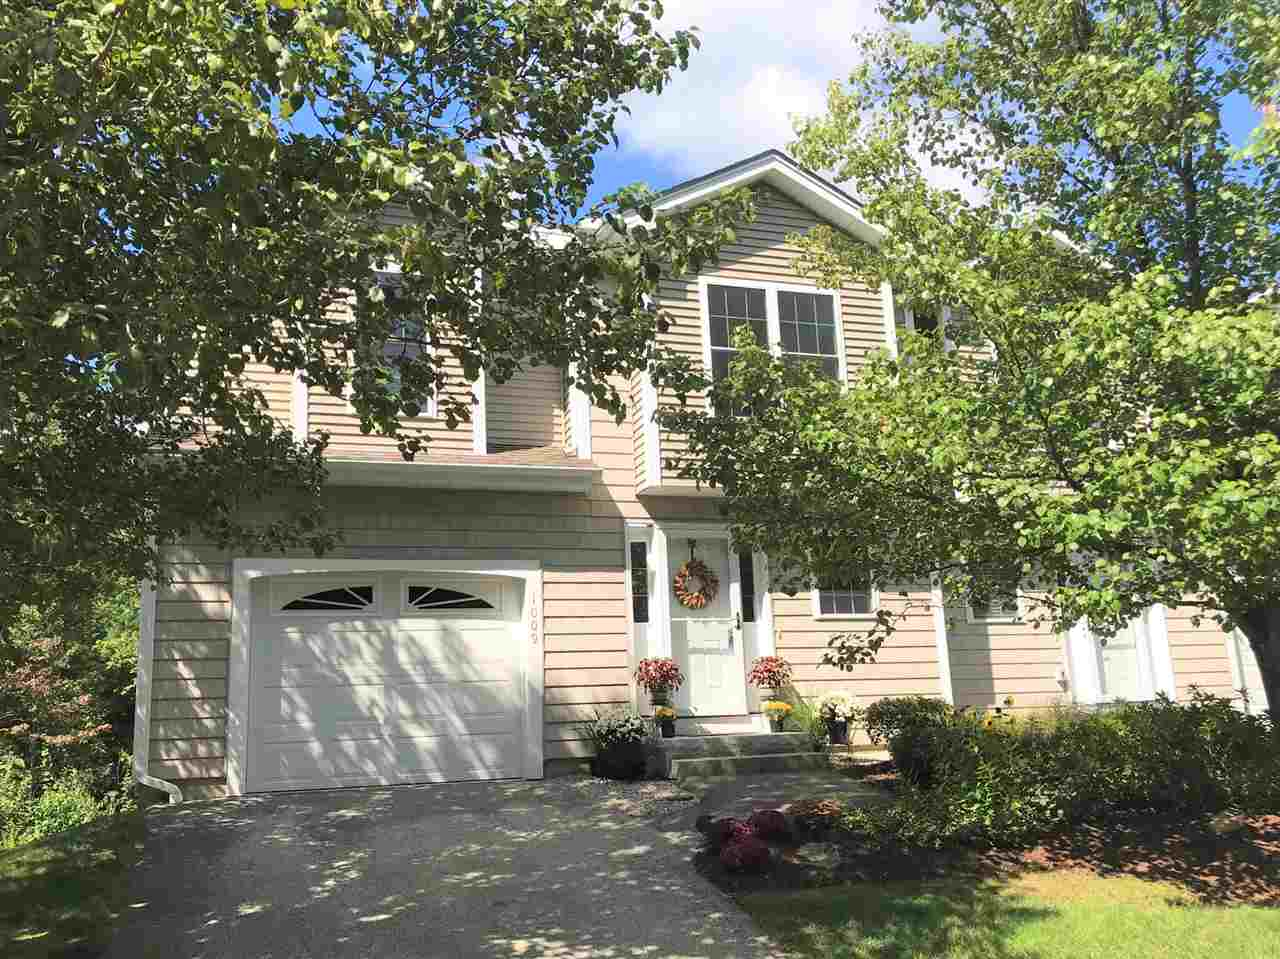 Photo of 1465 Hooksett Road Hooksett NH 03106